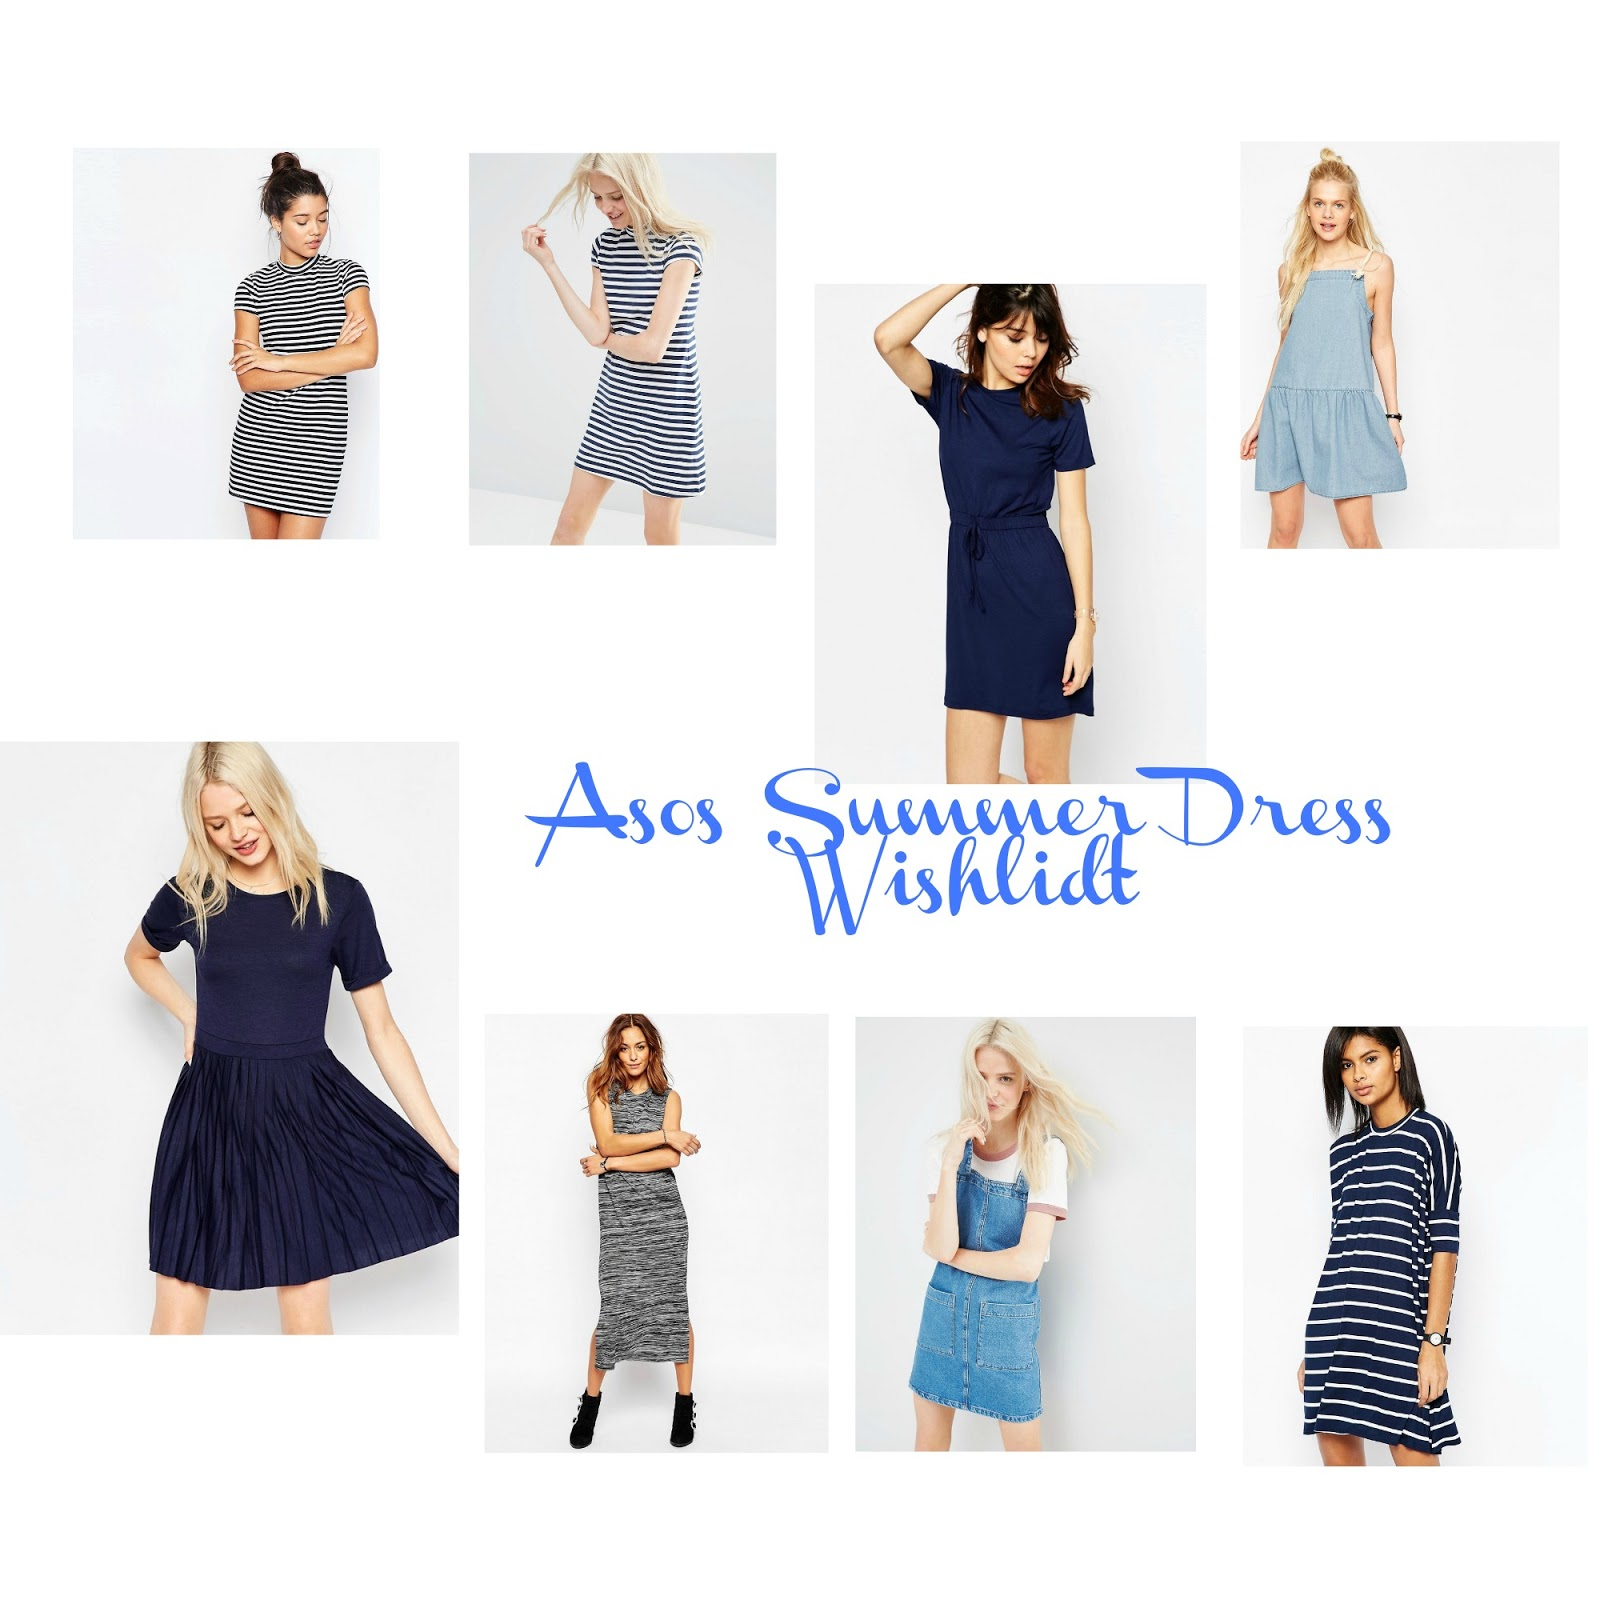 Asos Summer dress wishlist